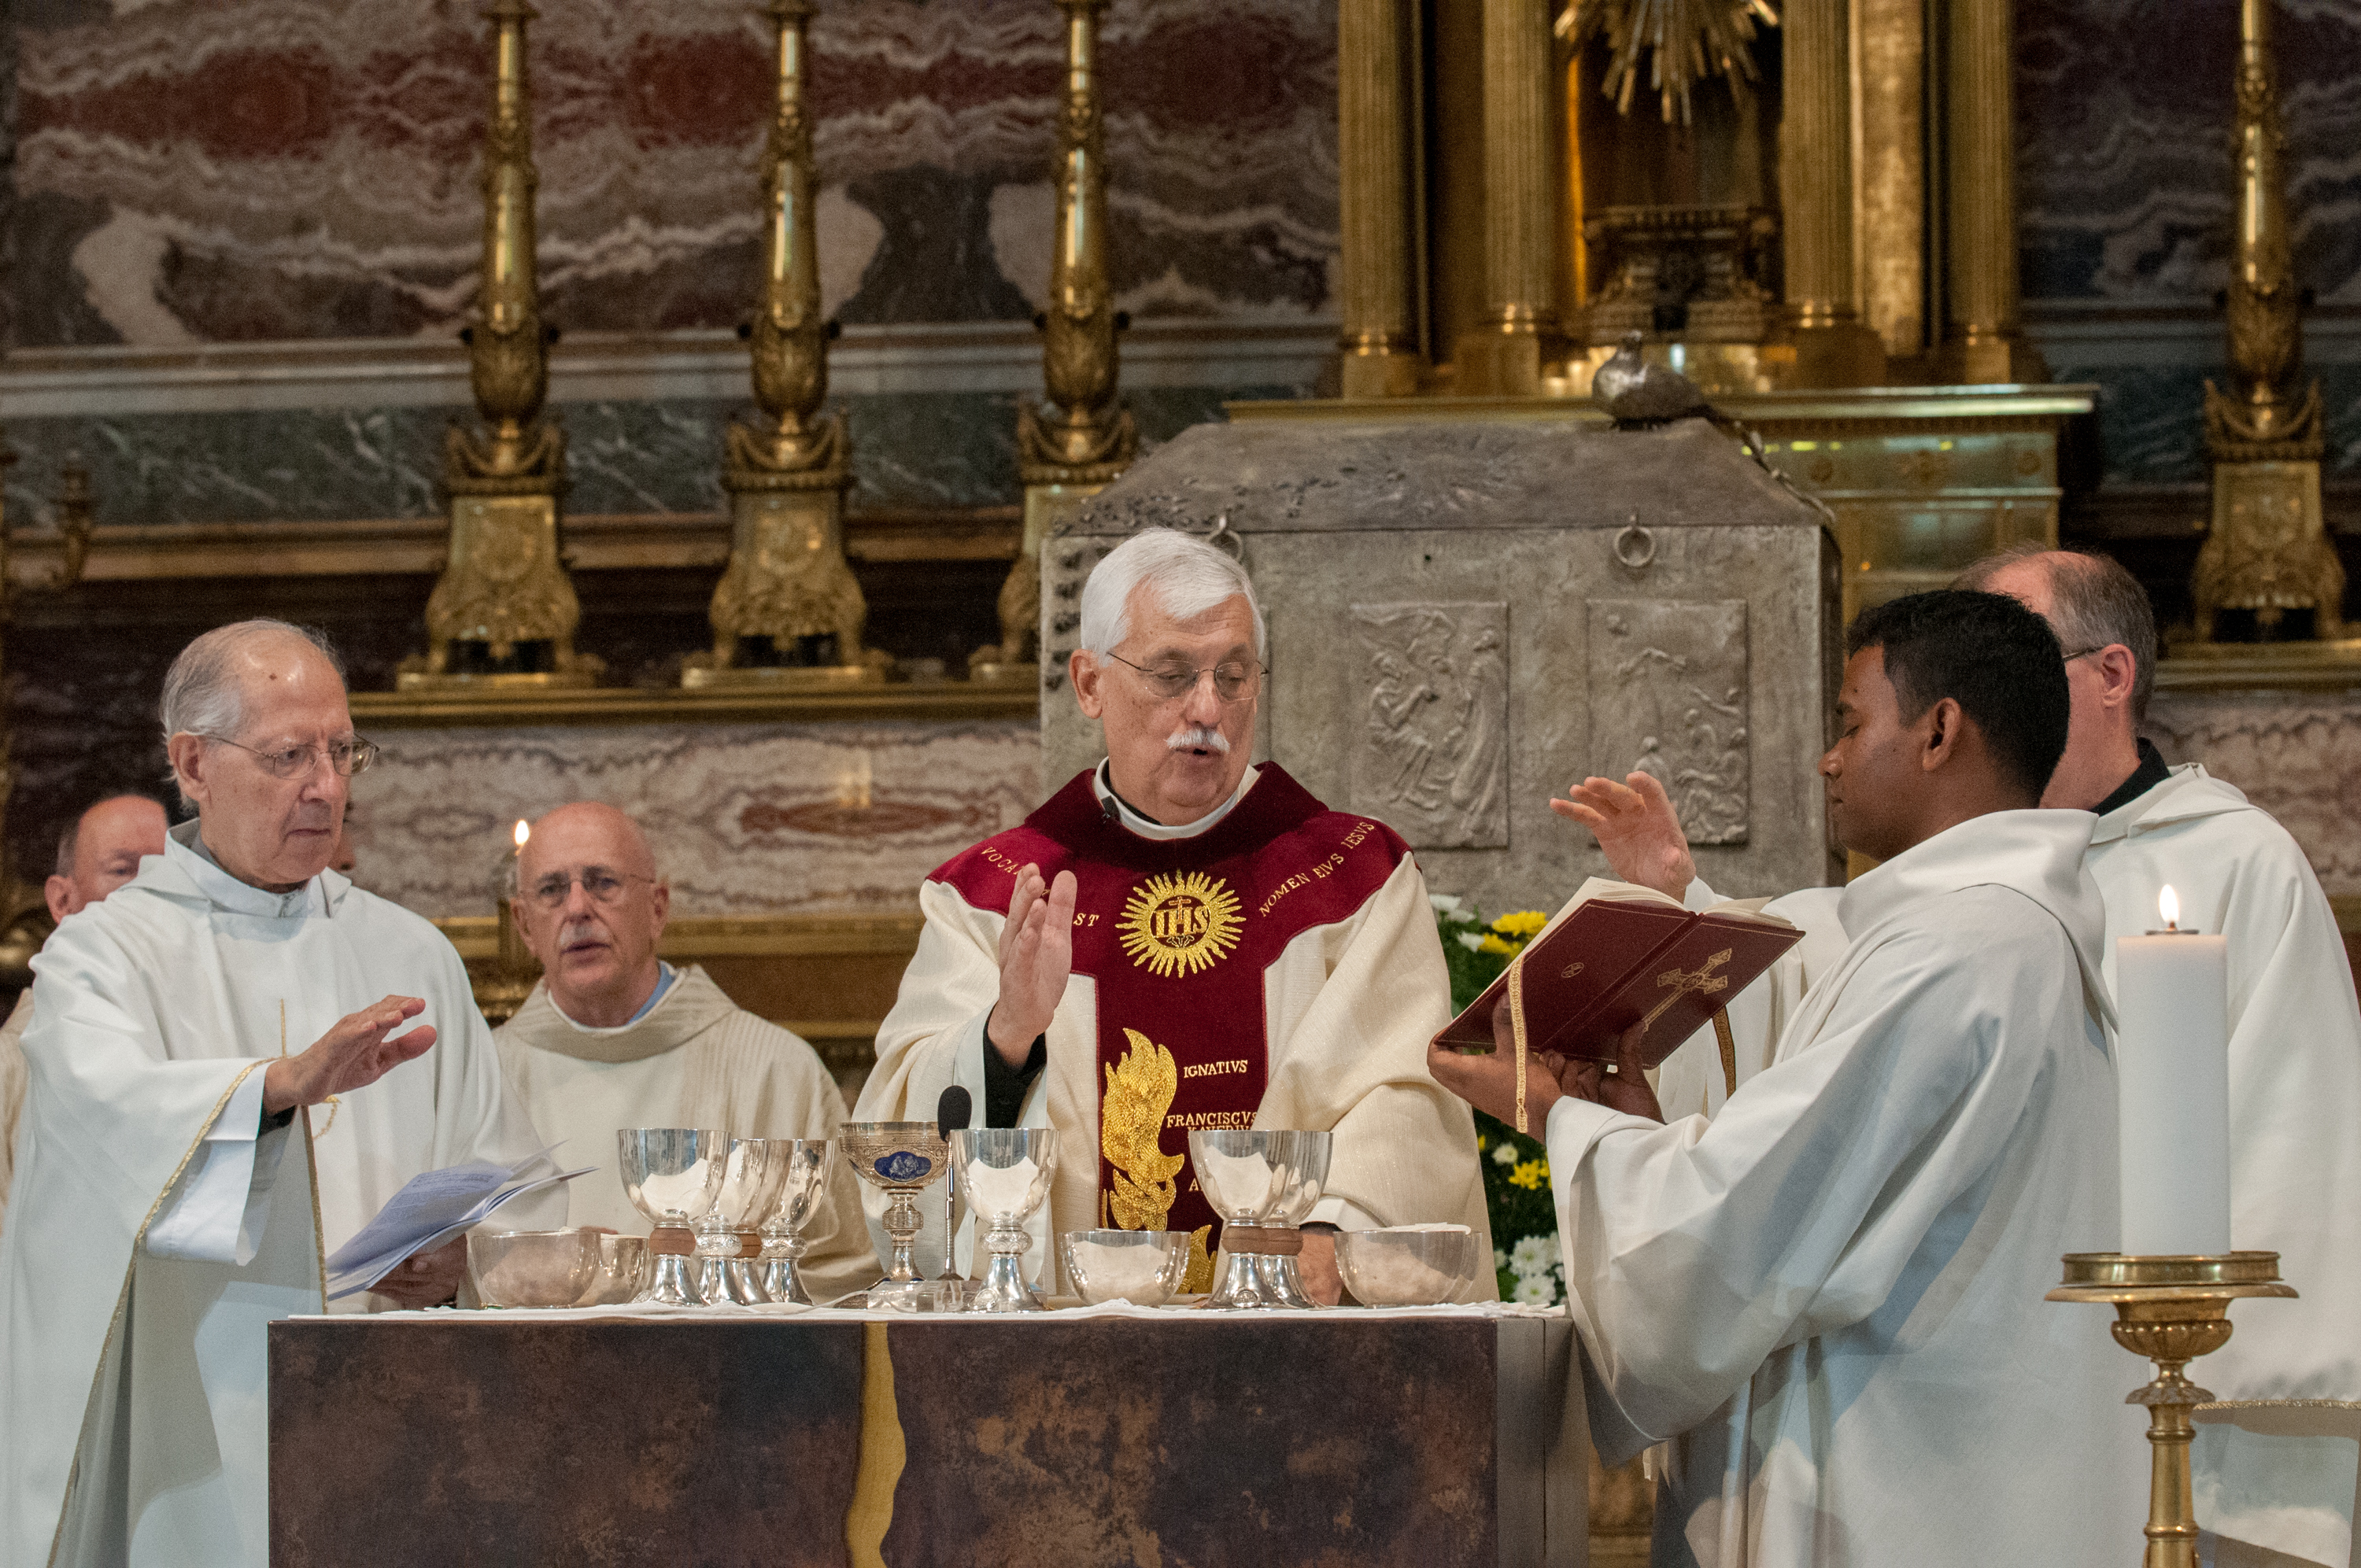 The Superior General of the Jesuits, Fr. Arturo Sosa, S.J., celebrated the mass of Thanksgiving at the Gesu, the mother church of the Society of Jesus